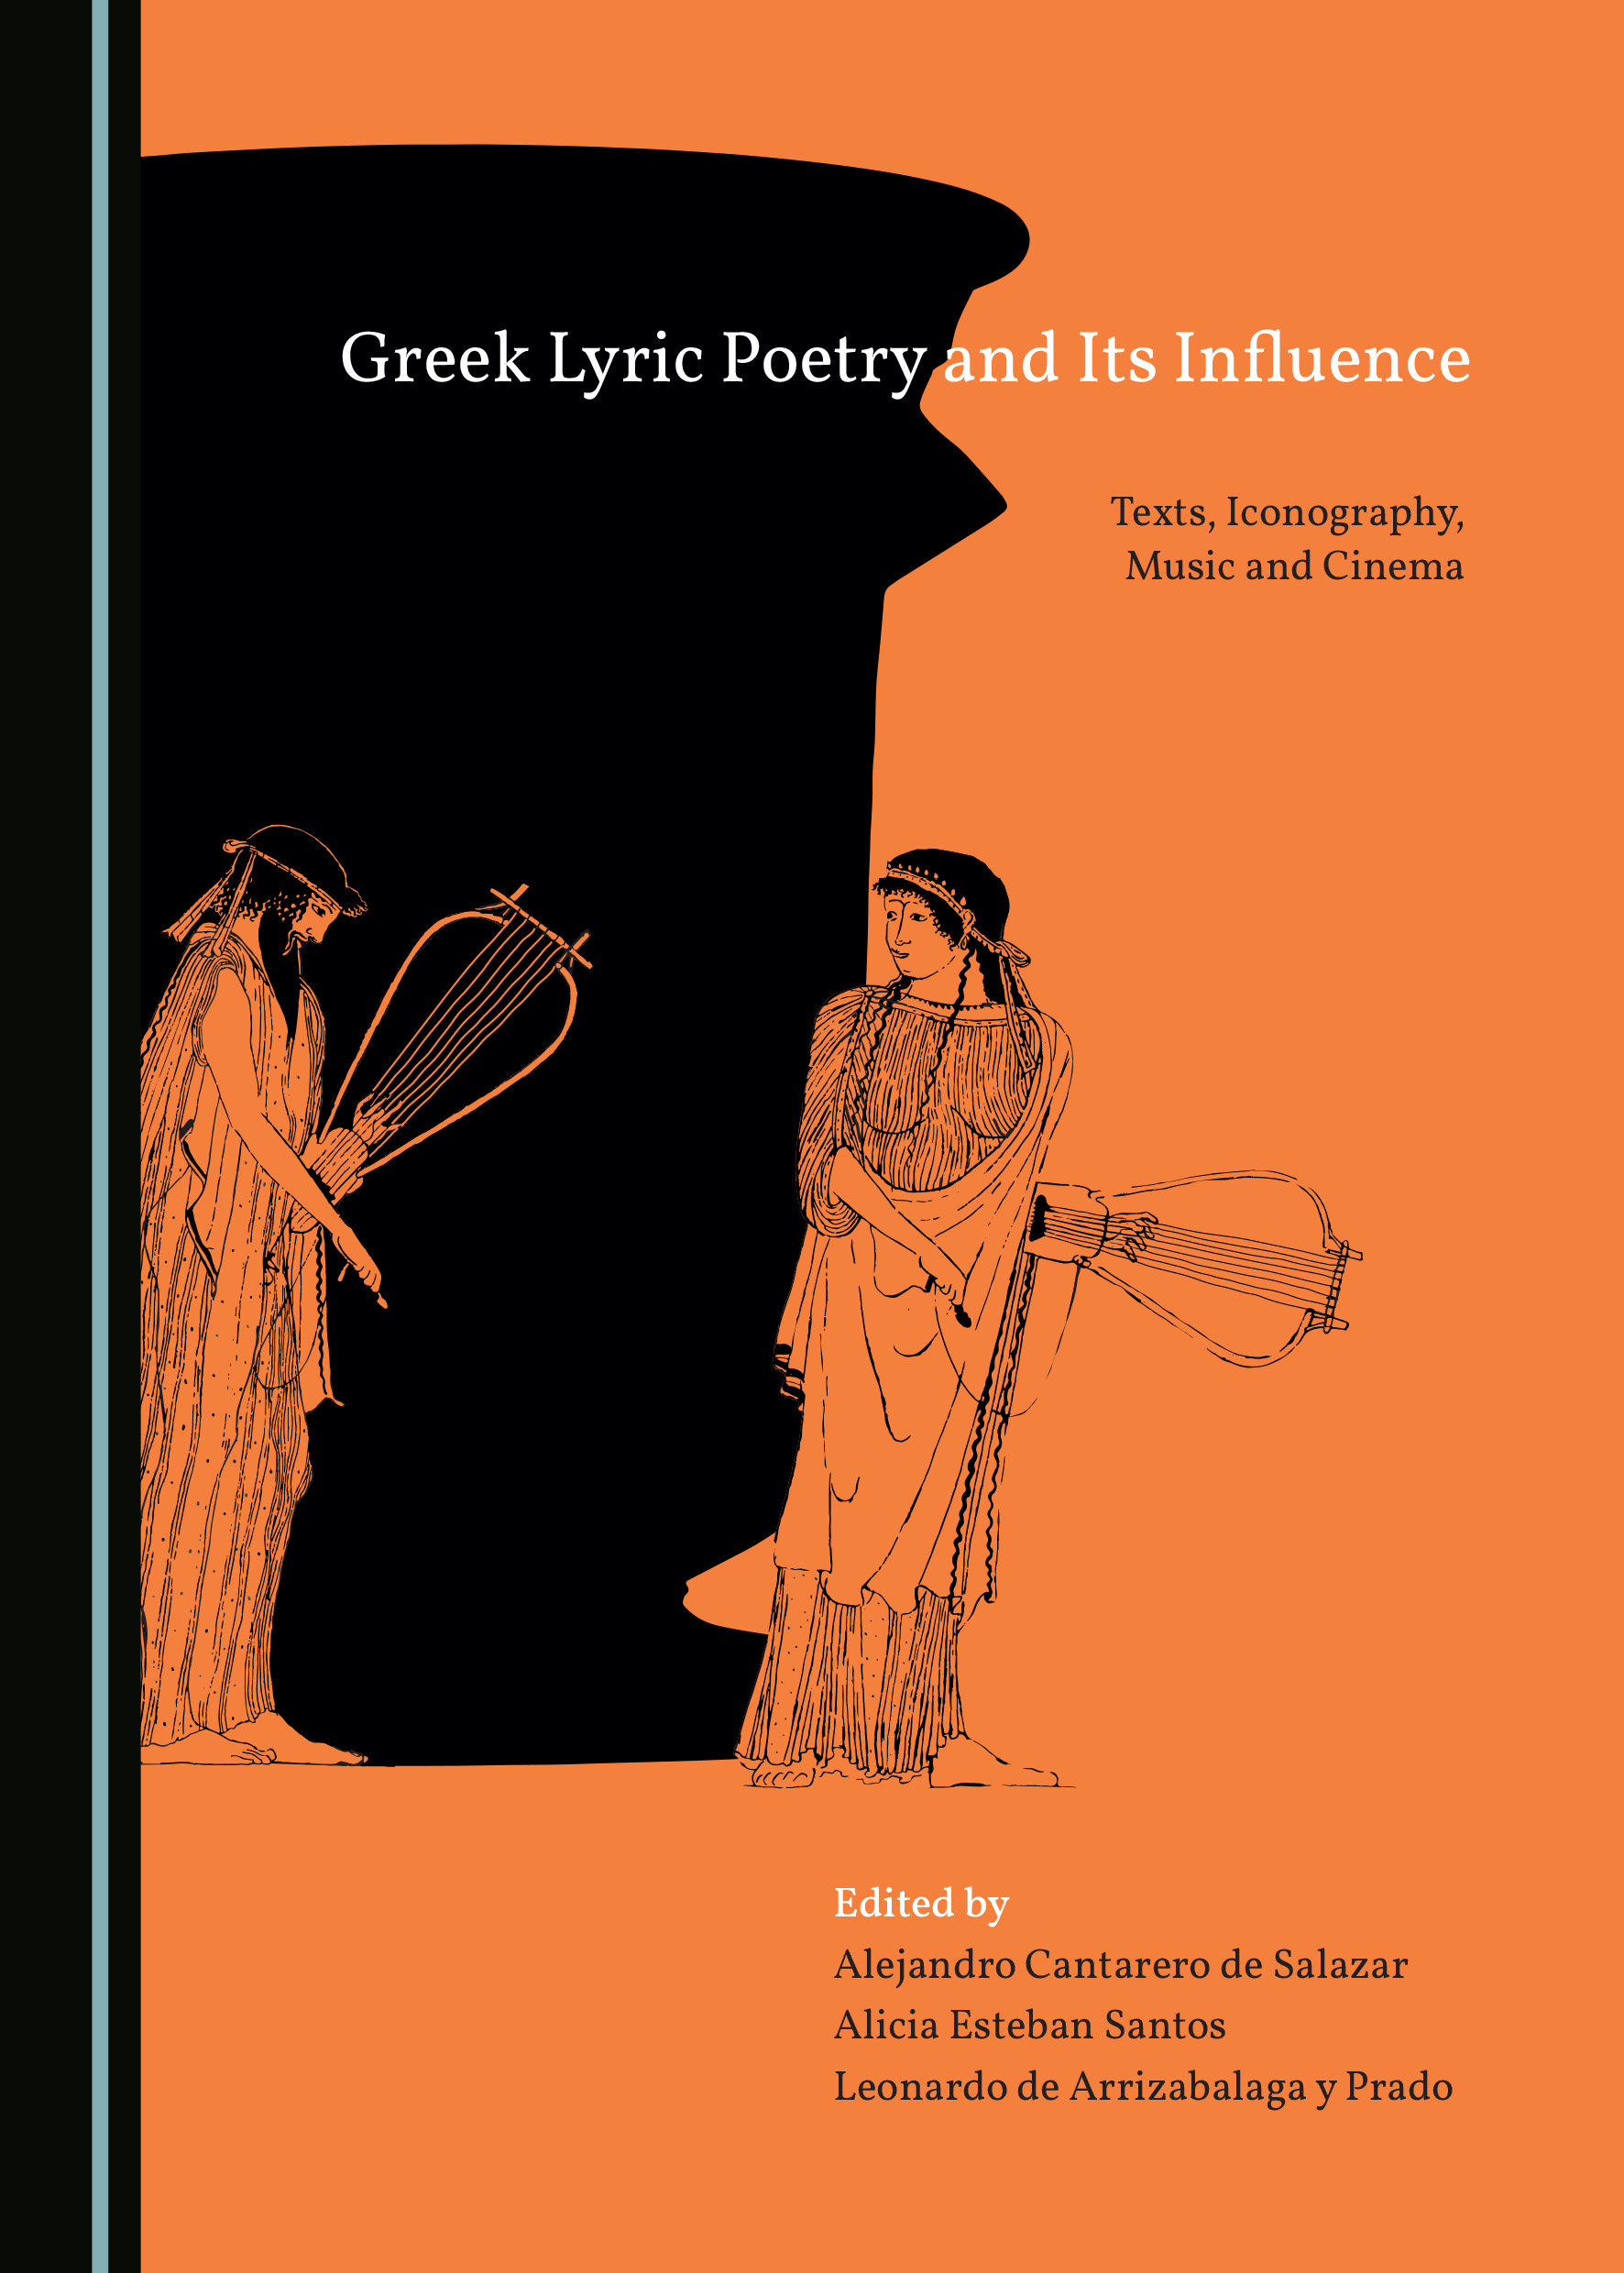 Greek Lyric Poetry and Its Influence: Texts, Iconography, Music and Cinema